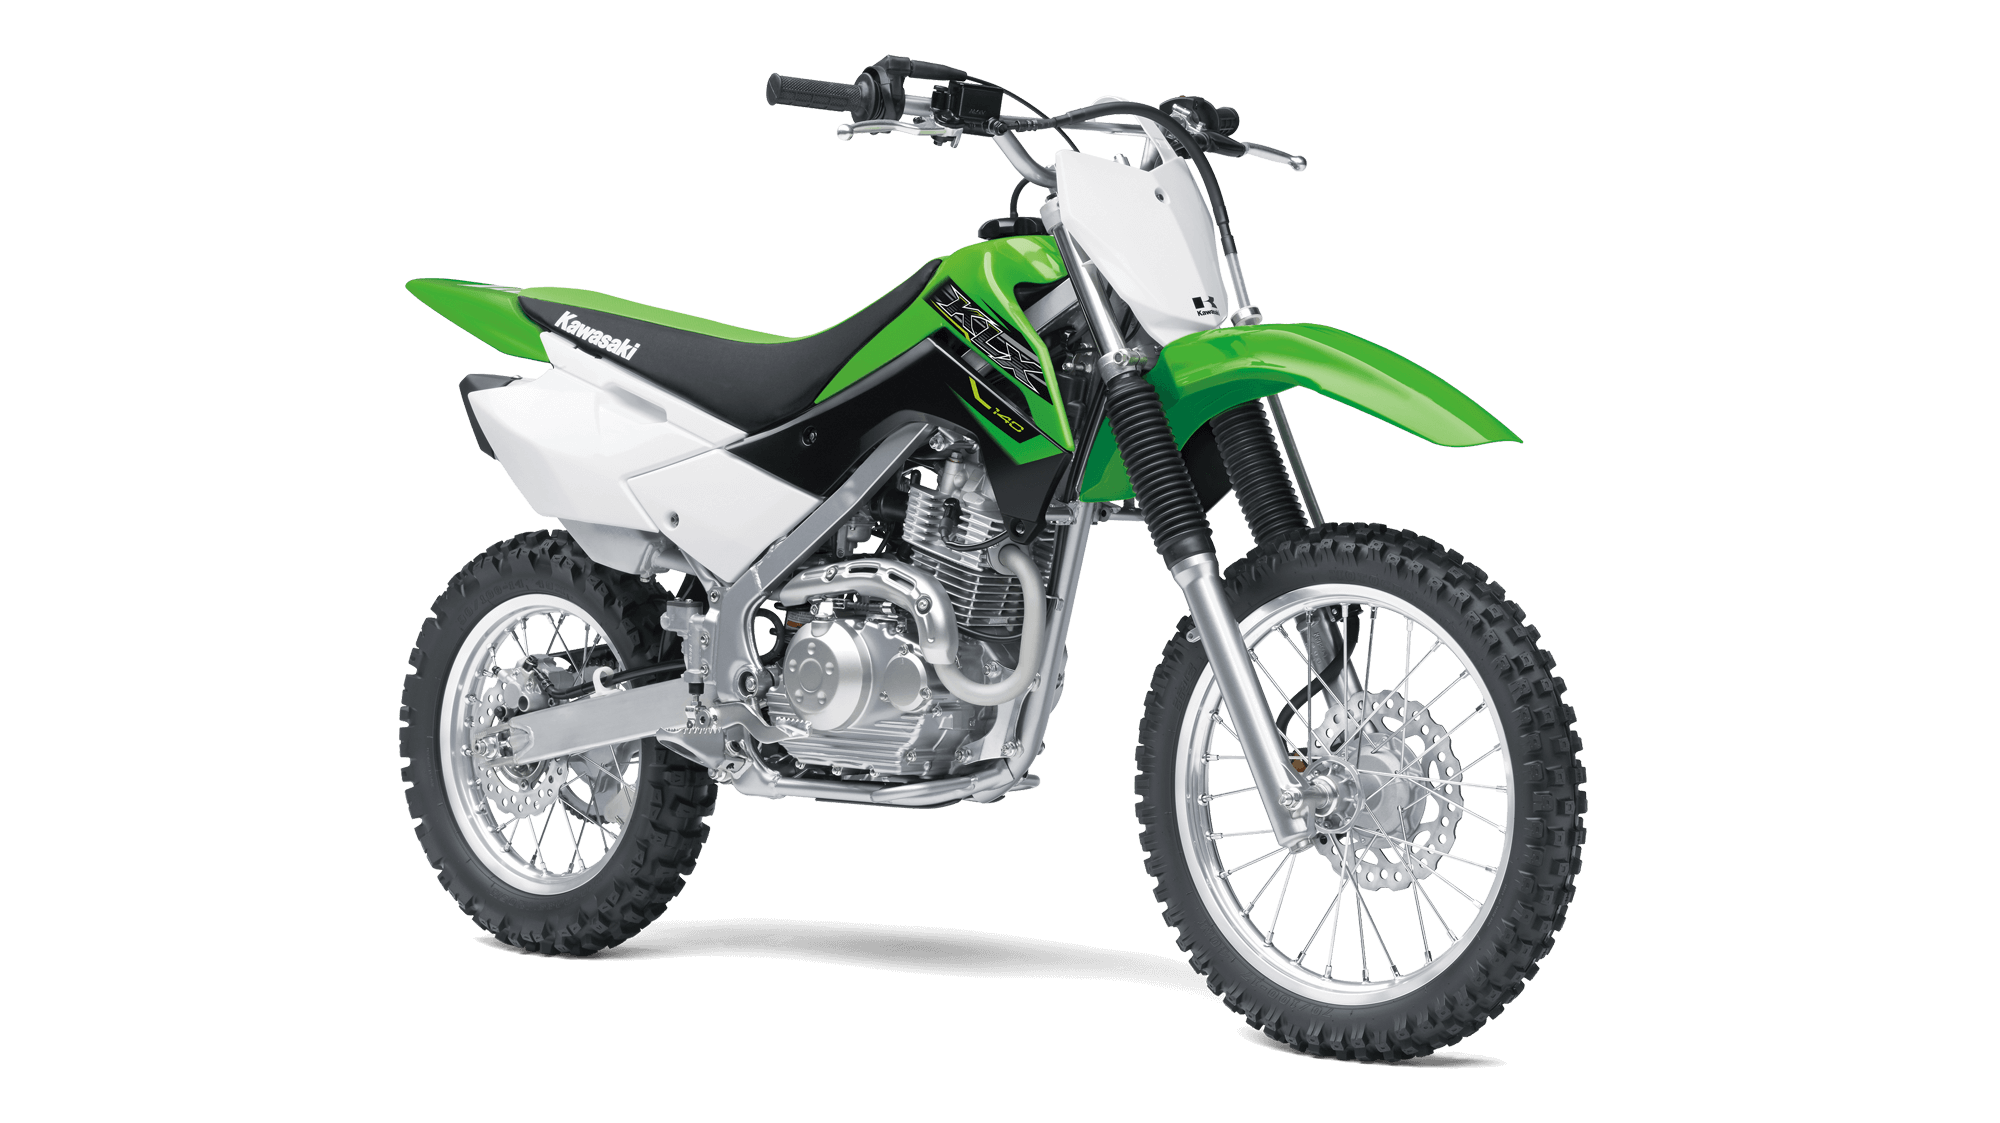 hight resolution of 2019 klx 140 klr klx motorcycle by kawasaki 2019 klx 140